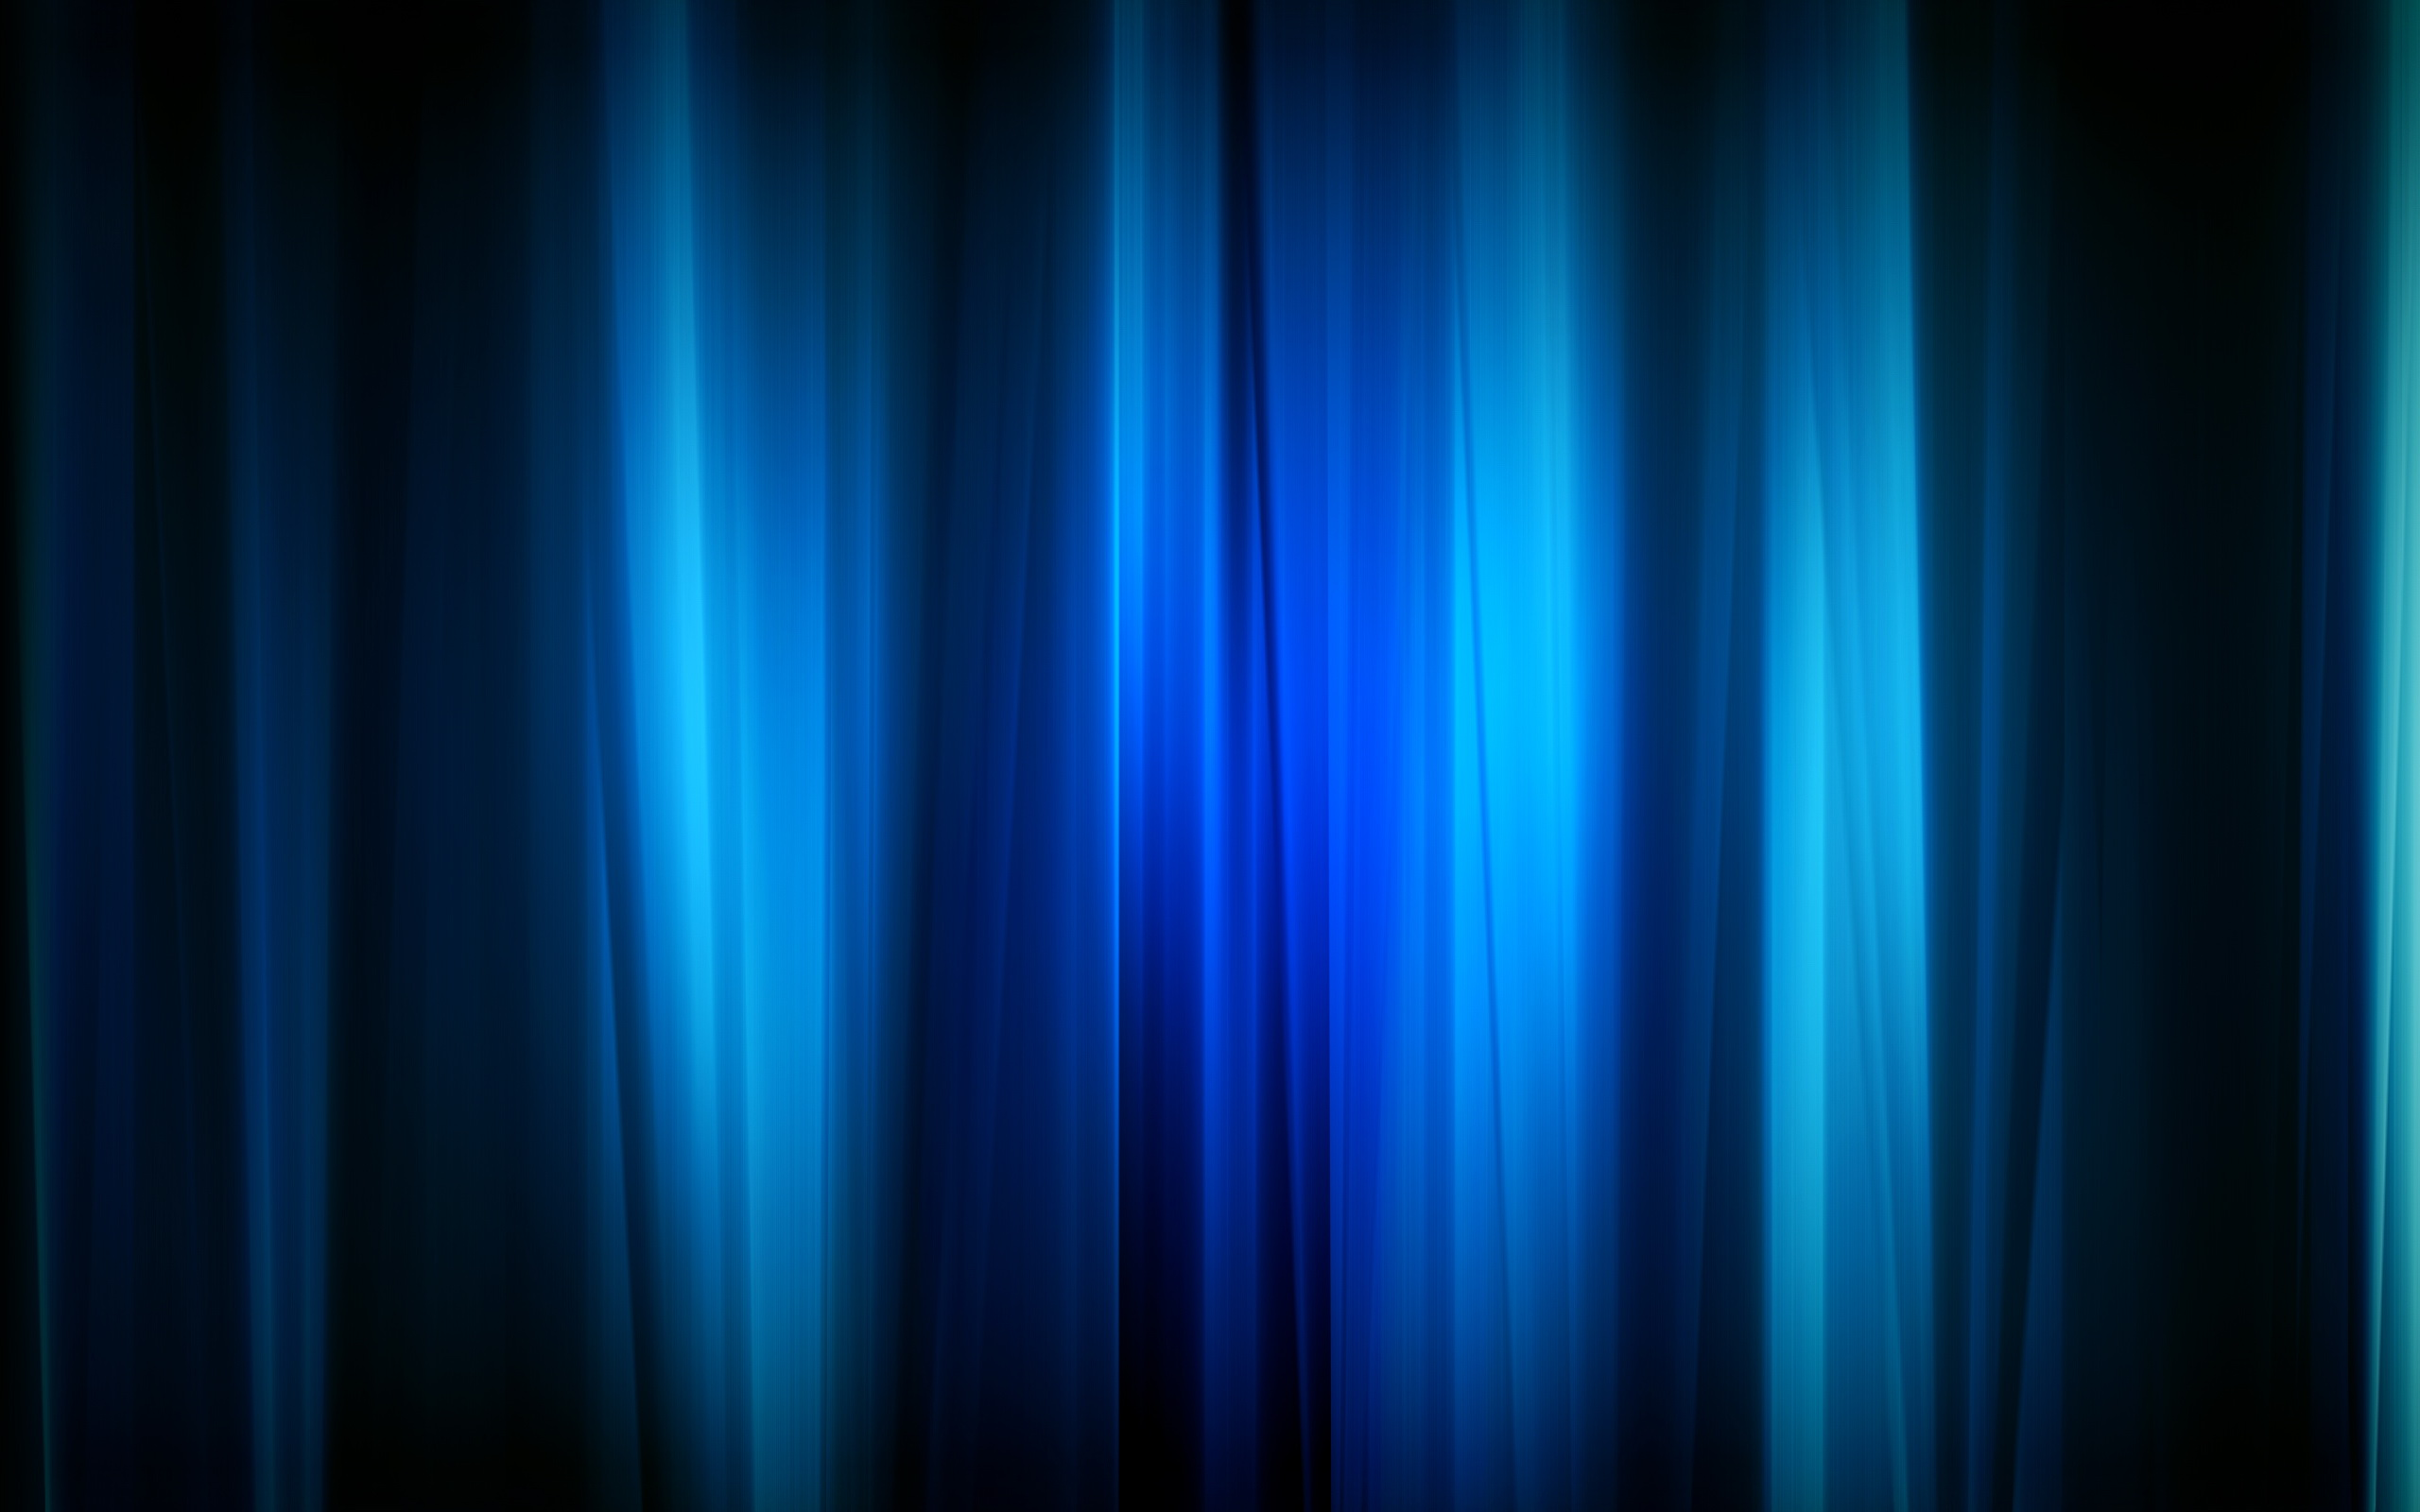 Blue Curtain Wallpapers HD Wallpapers 2560x1600